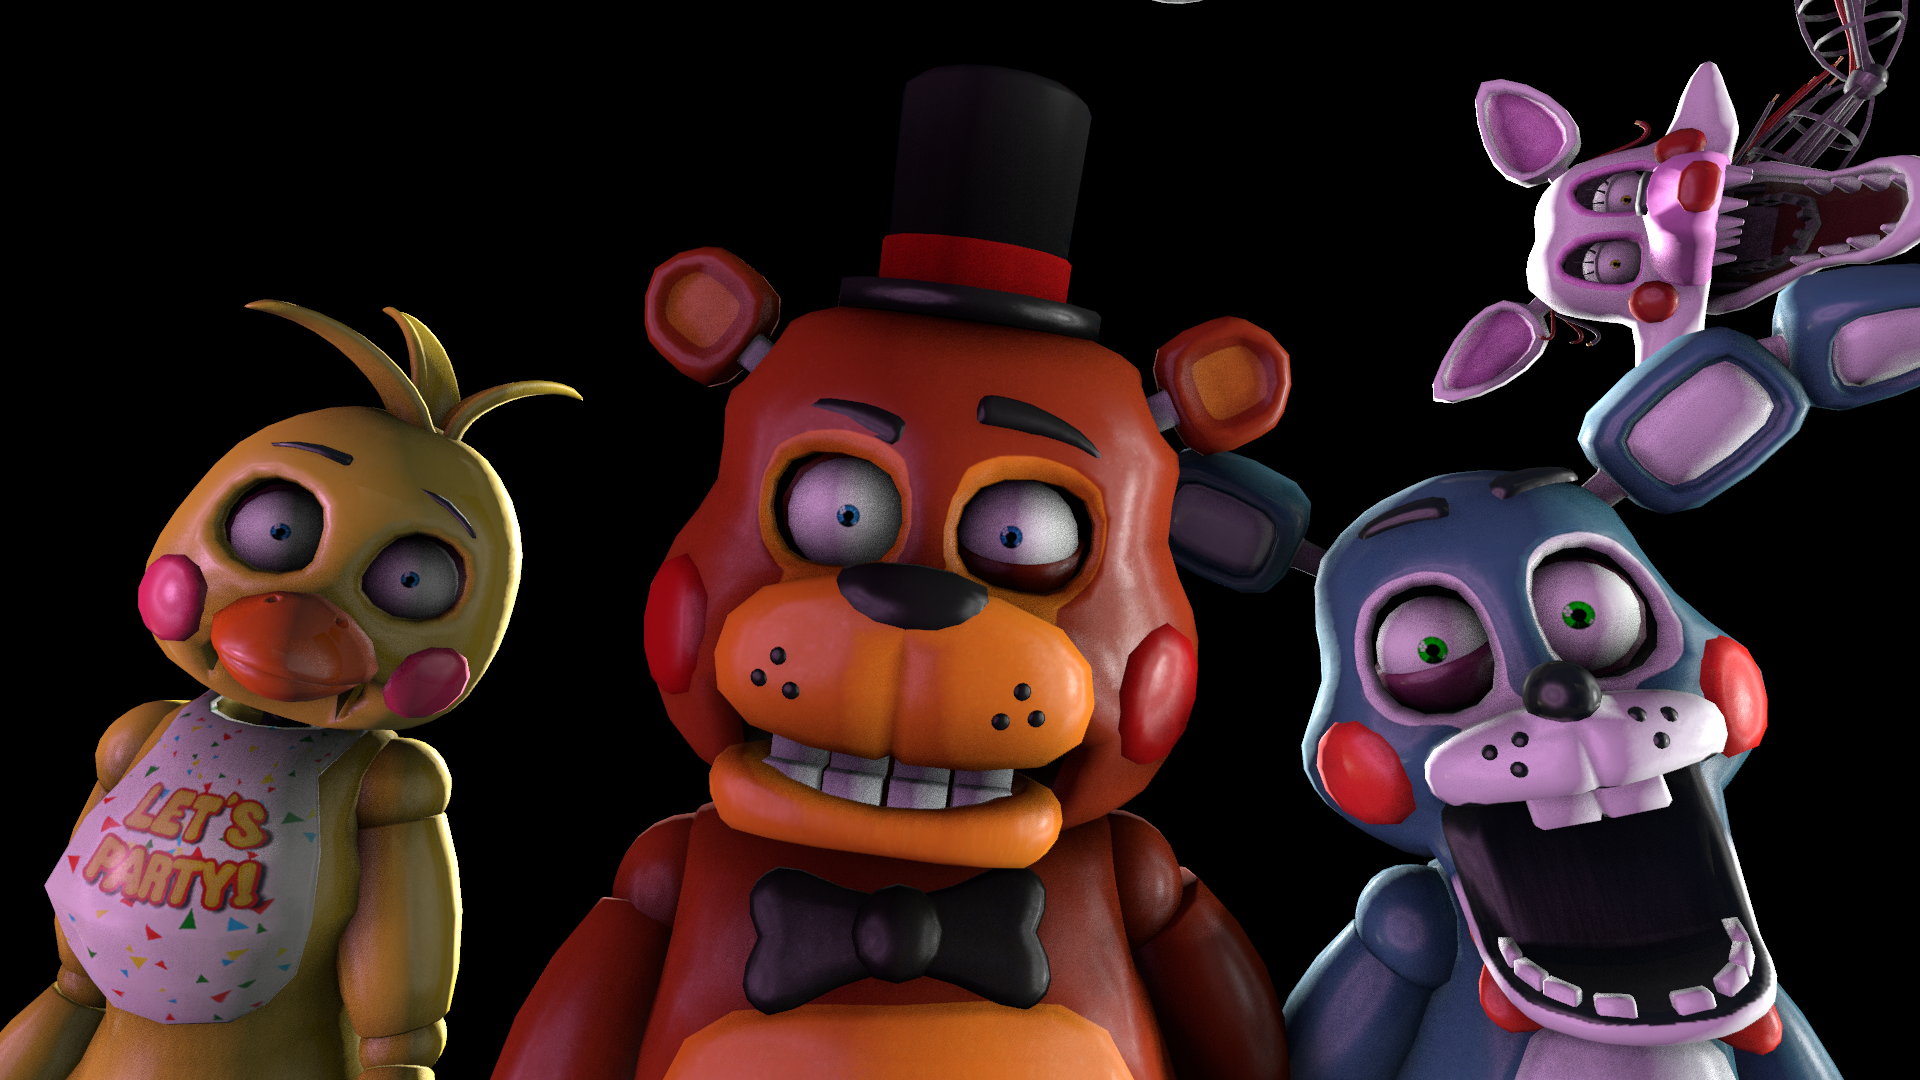 Steam Workshop :: [FNAF SFM Texture] Small eyes for the Toy Animatronics